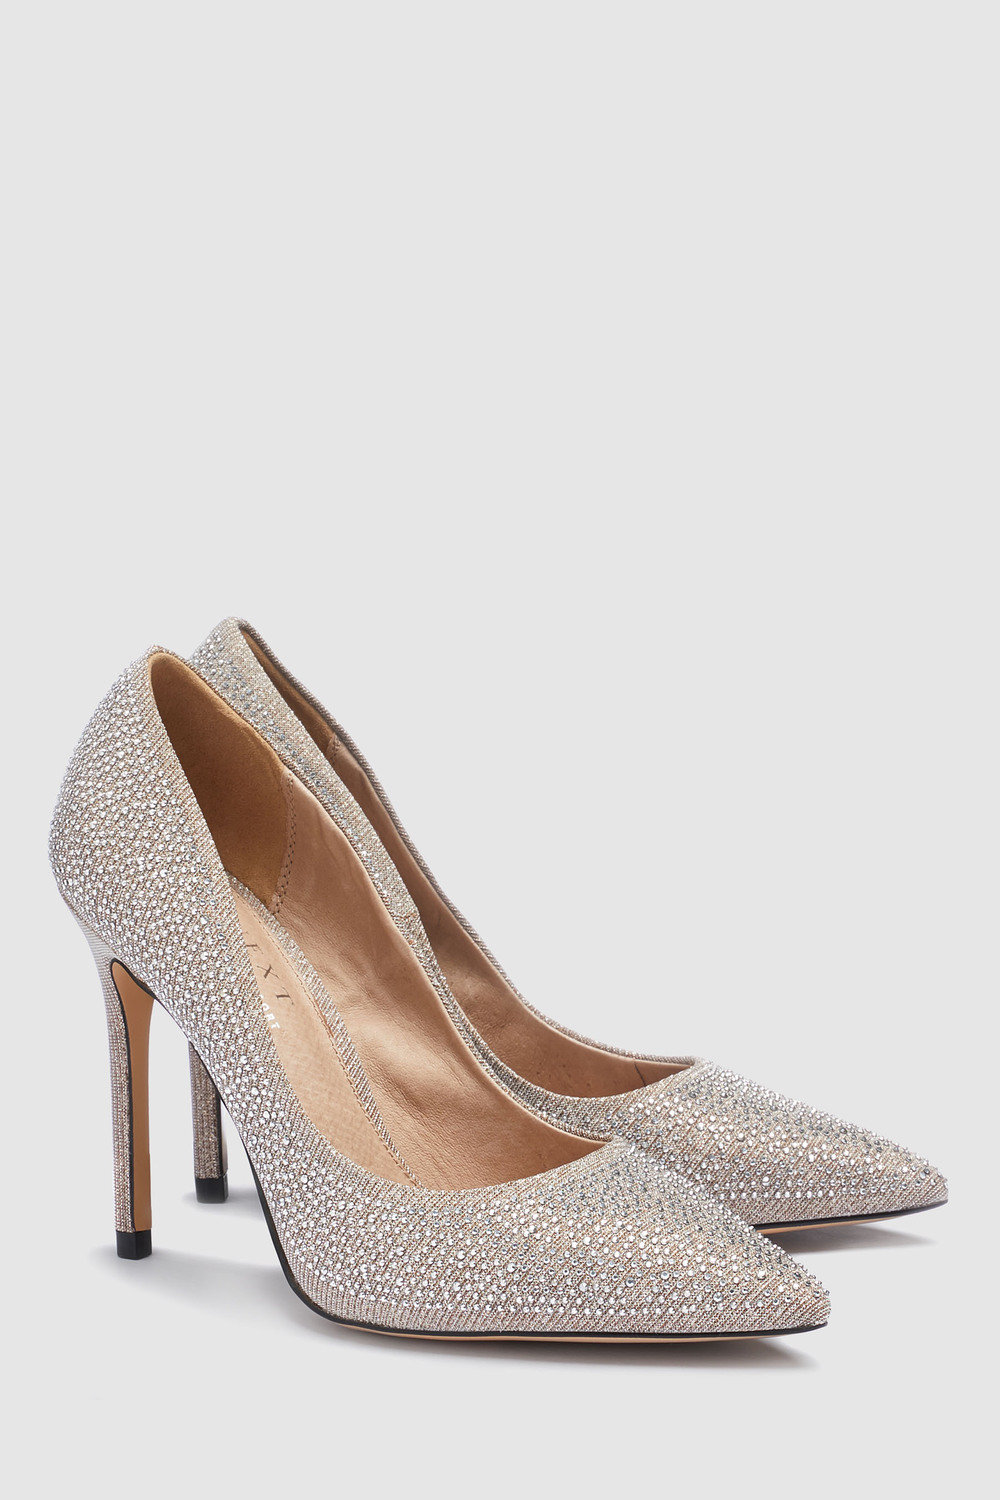 c7b2bebce26 Next Forever Comfort Point Court Shoes Online